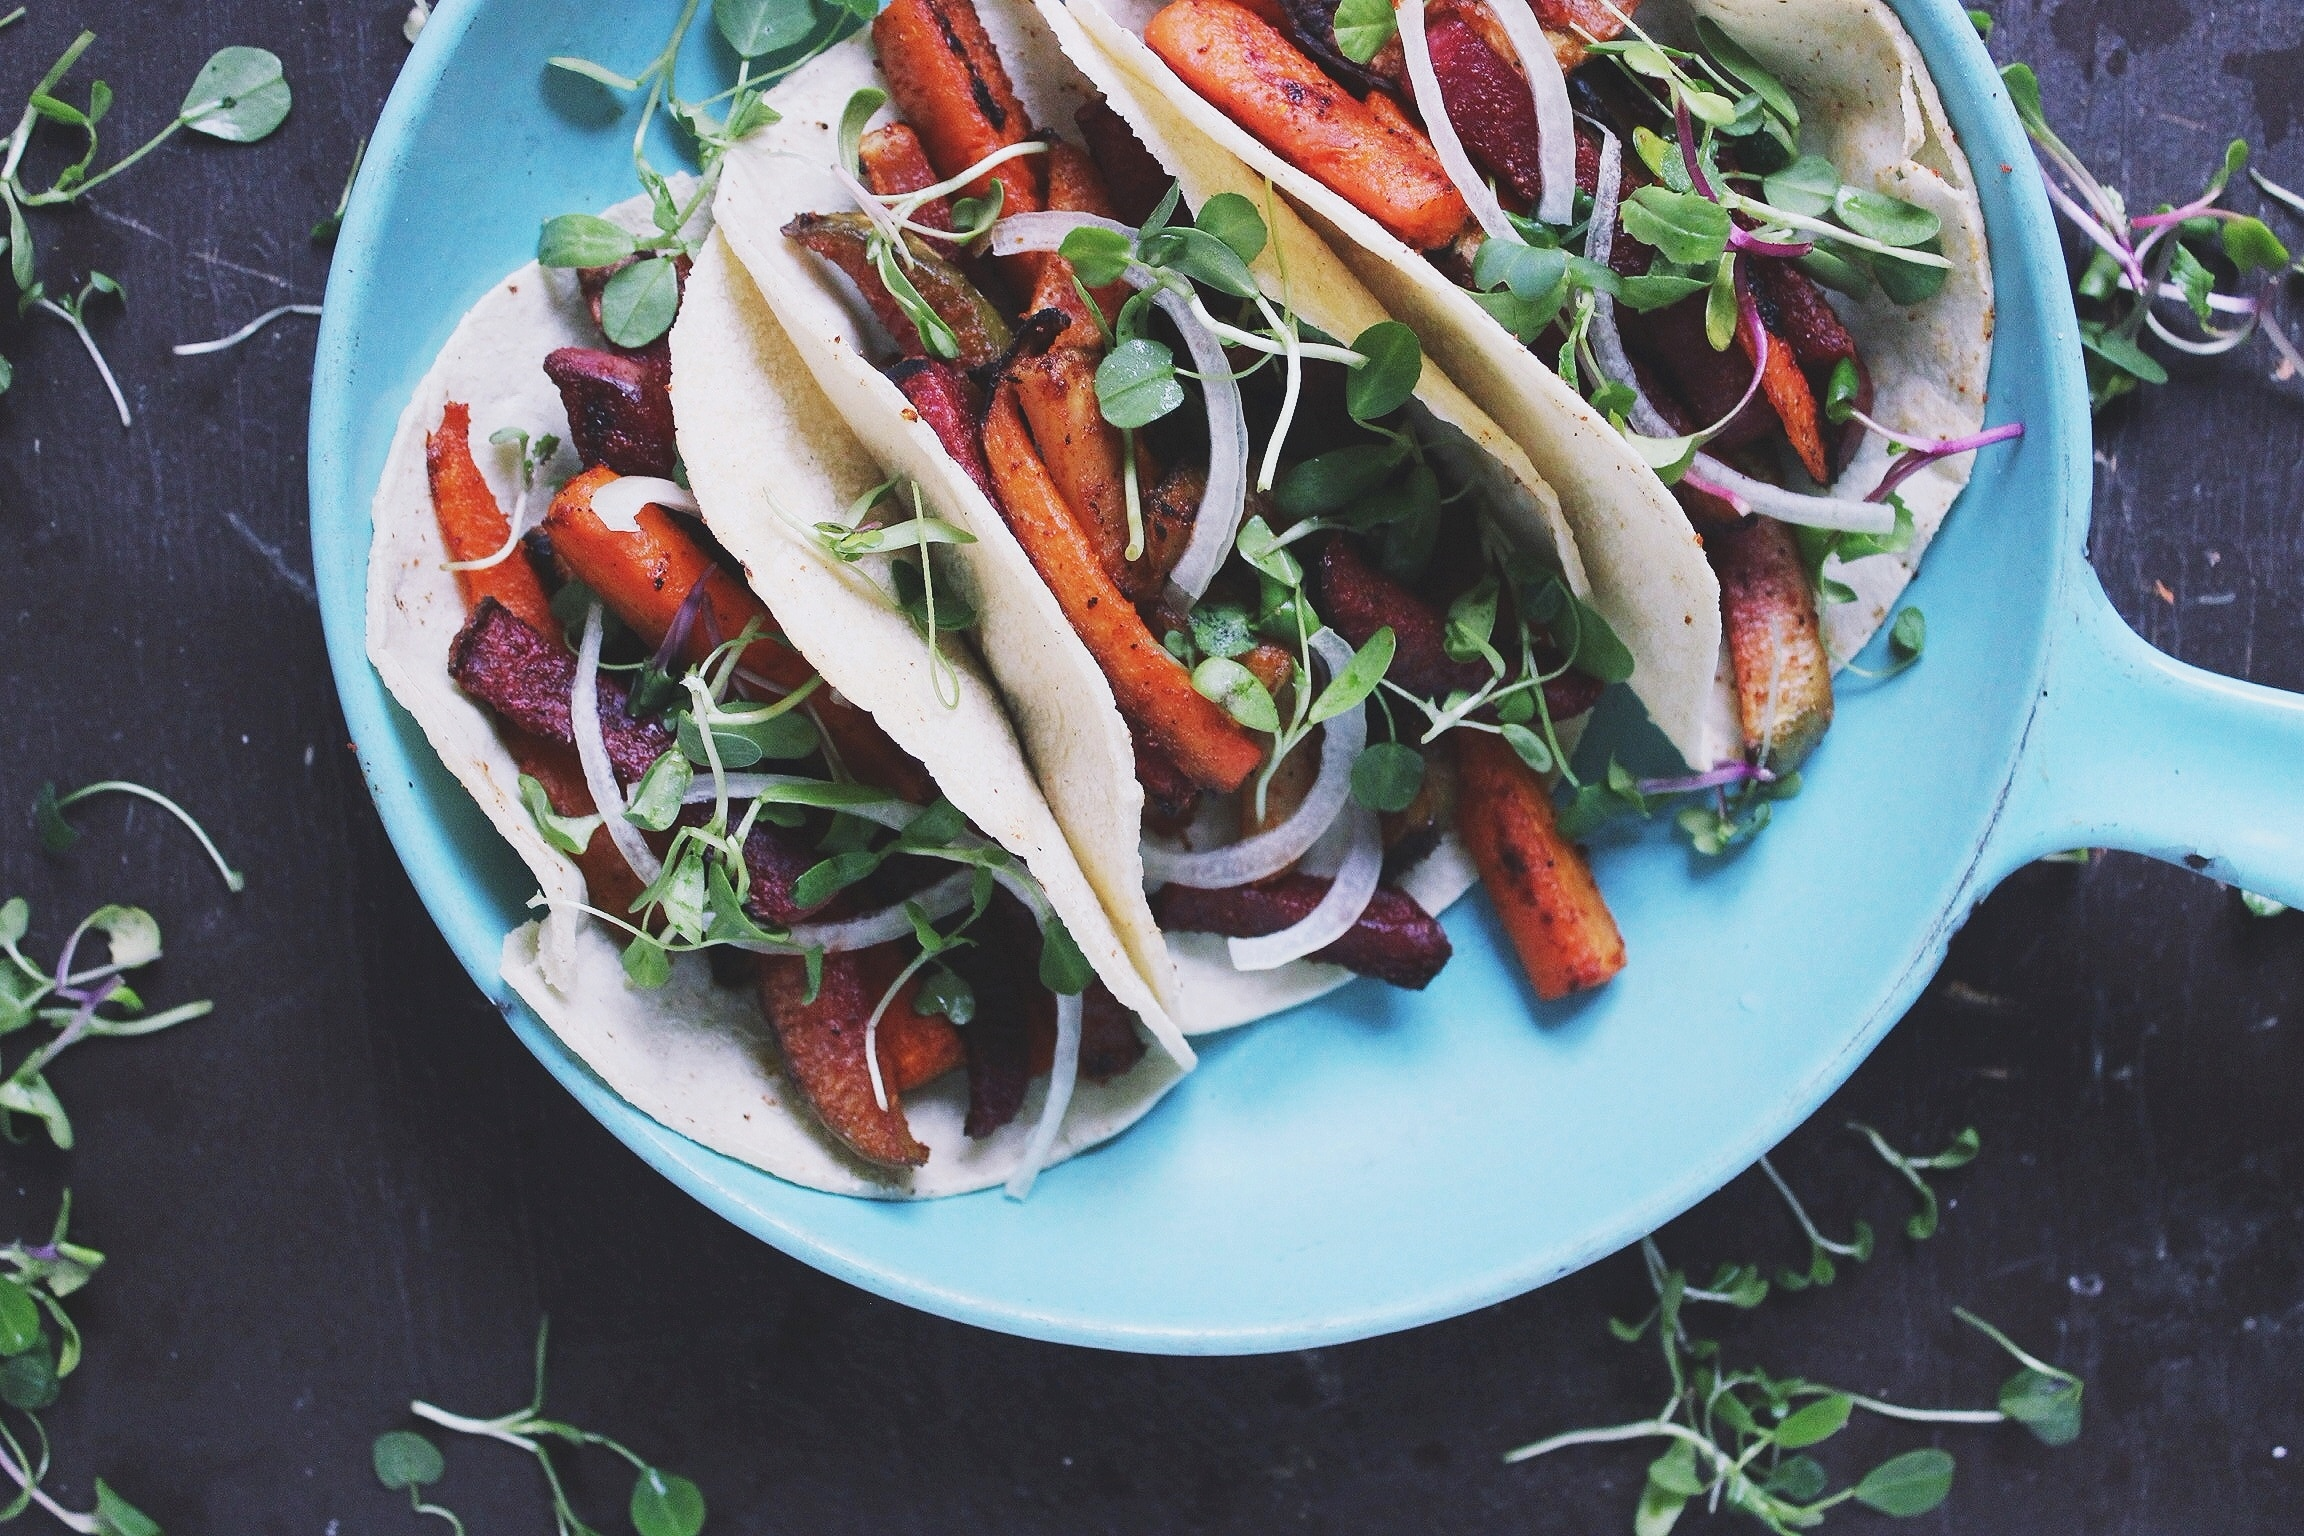 Roasted root veggie fajitas